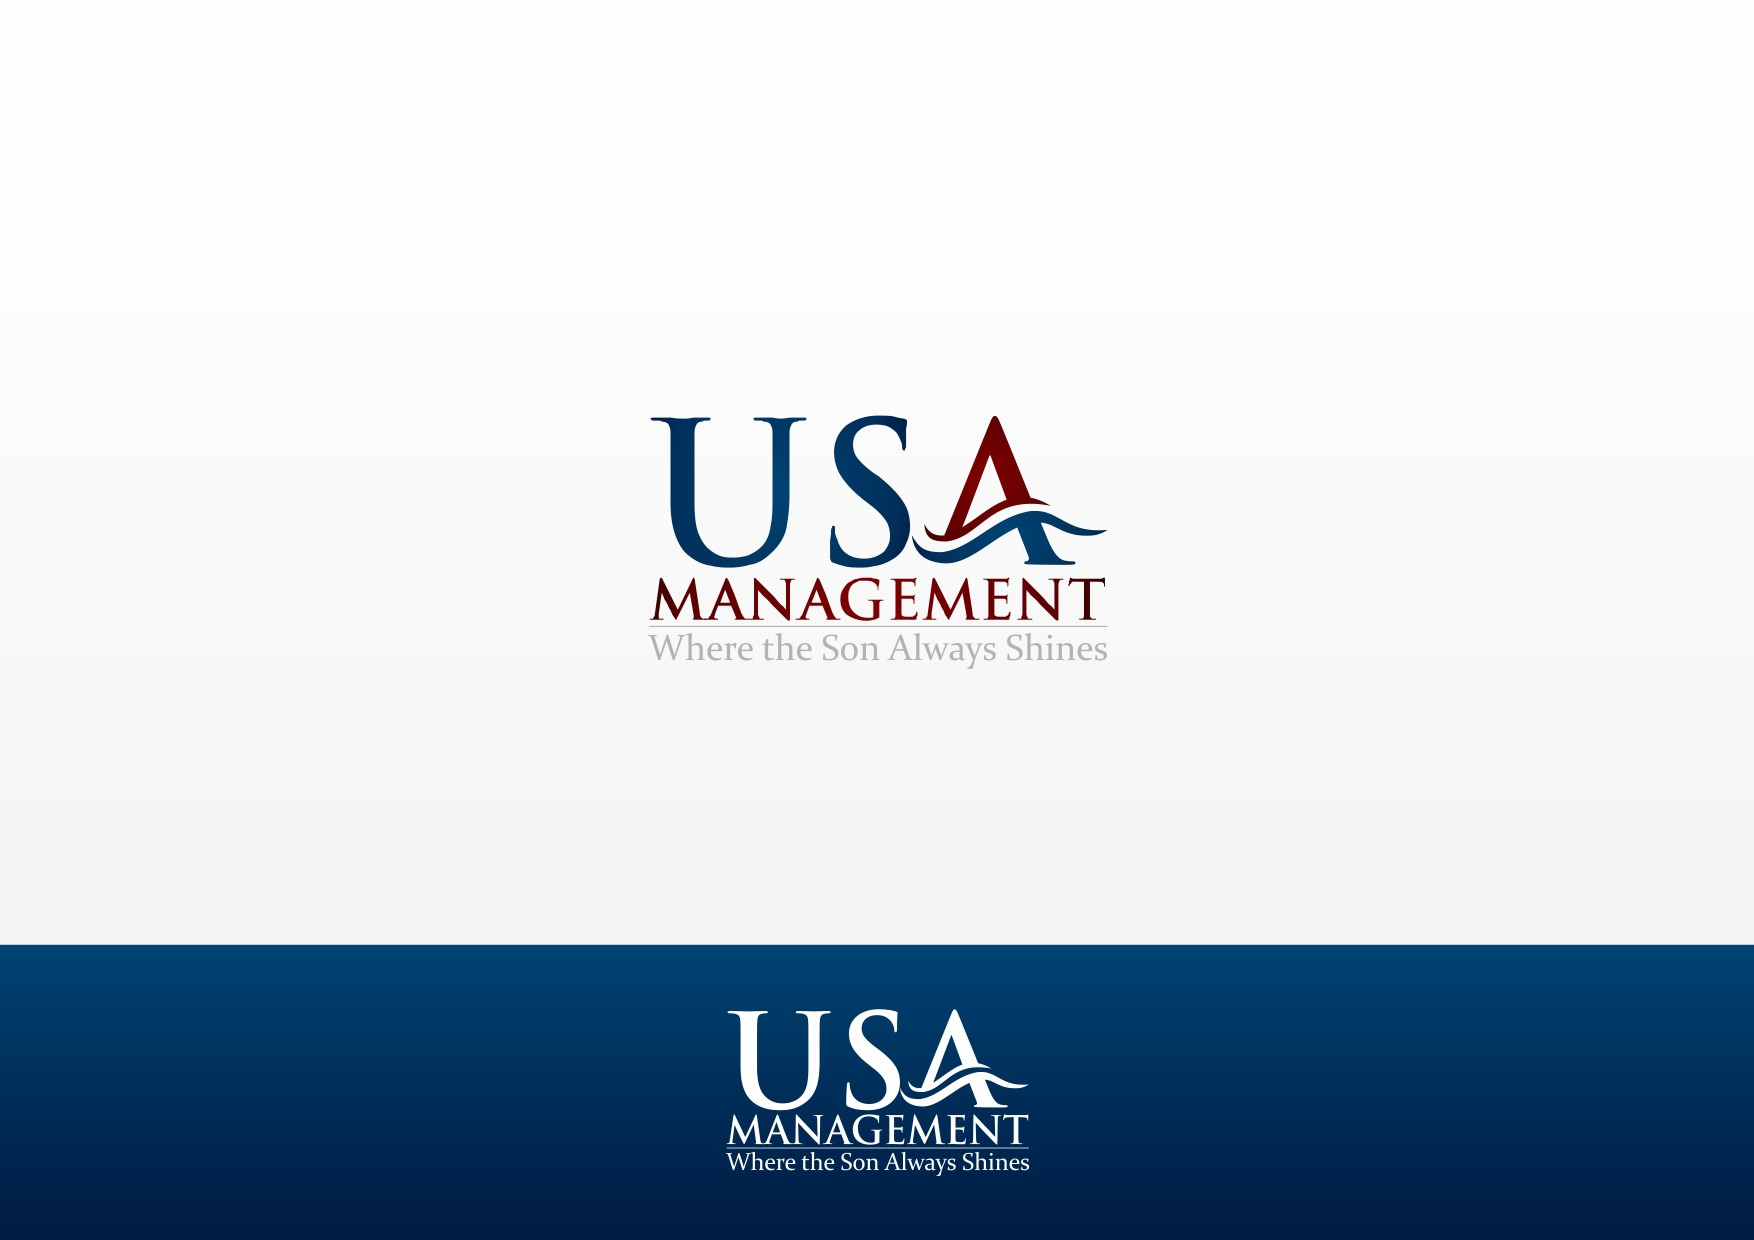 Help USA Management with a new logo